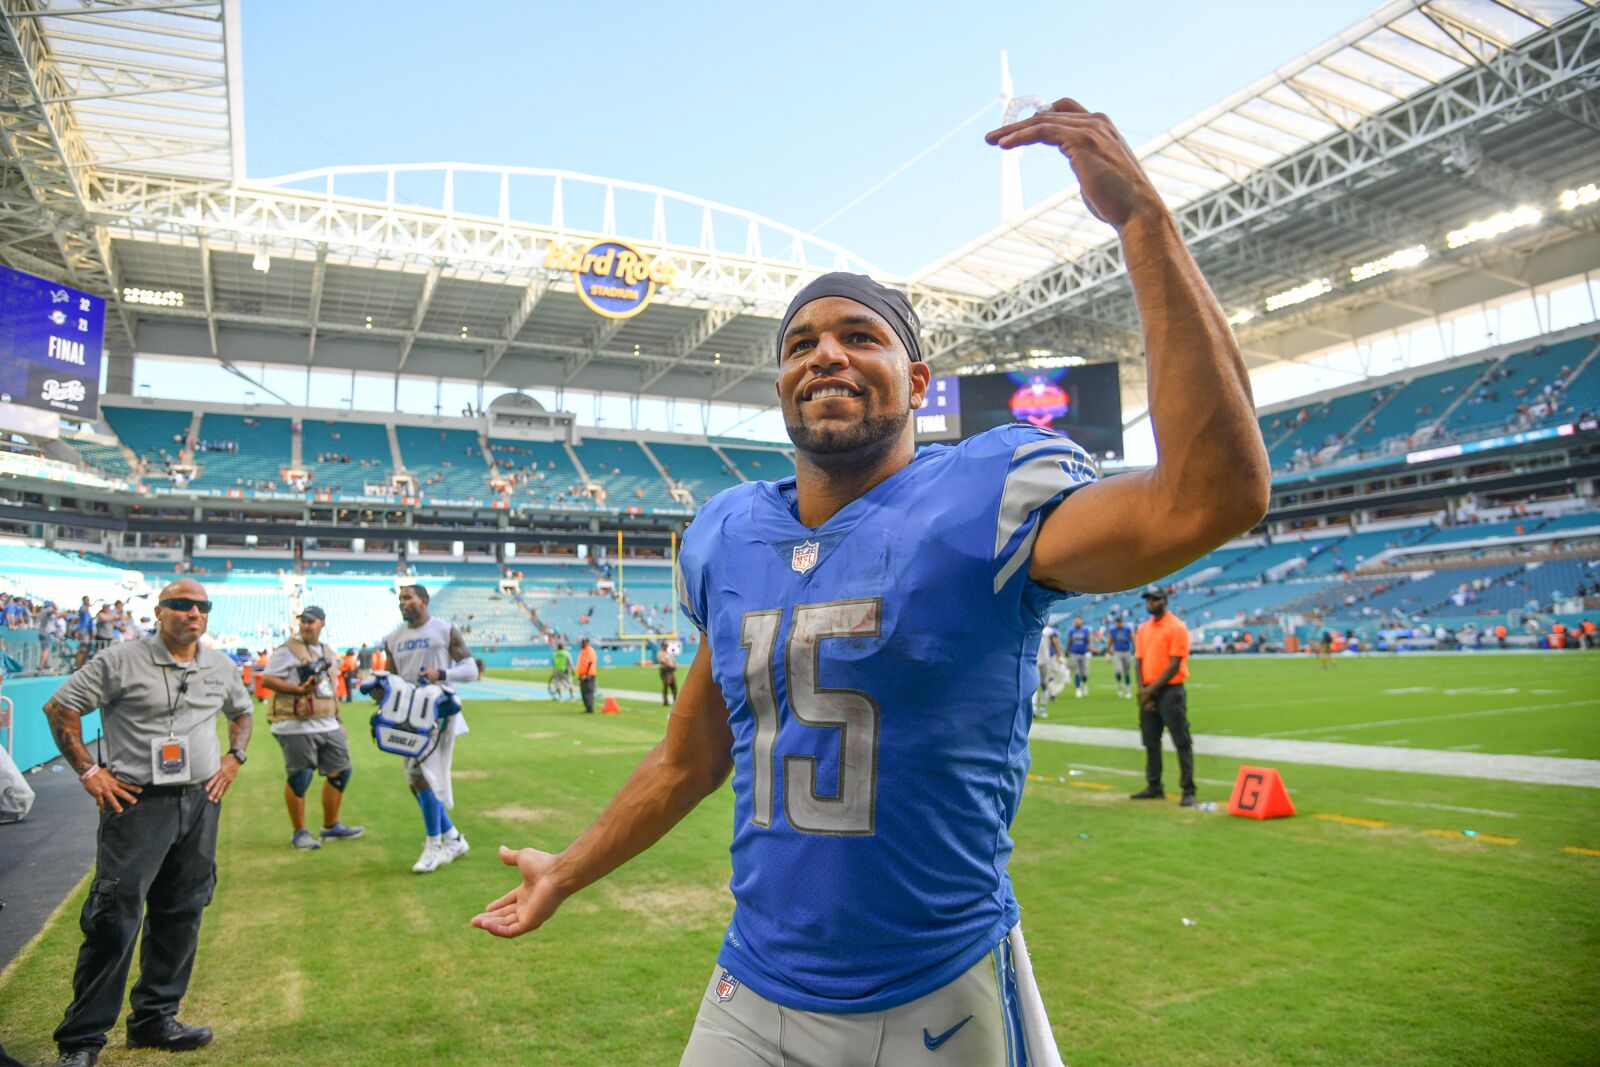 Why Golden Tate to the New York Giants makes sense 69378ae00